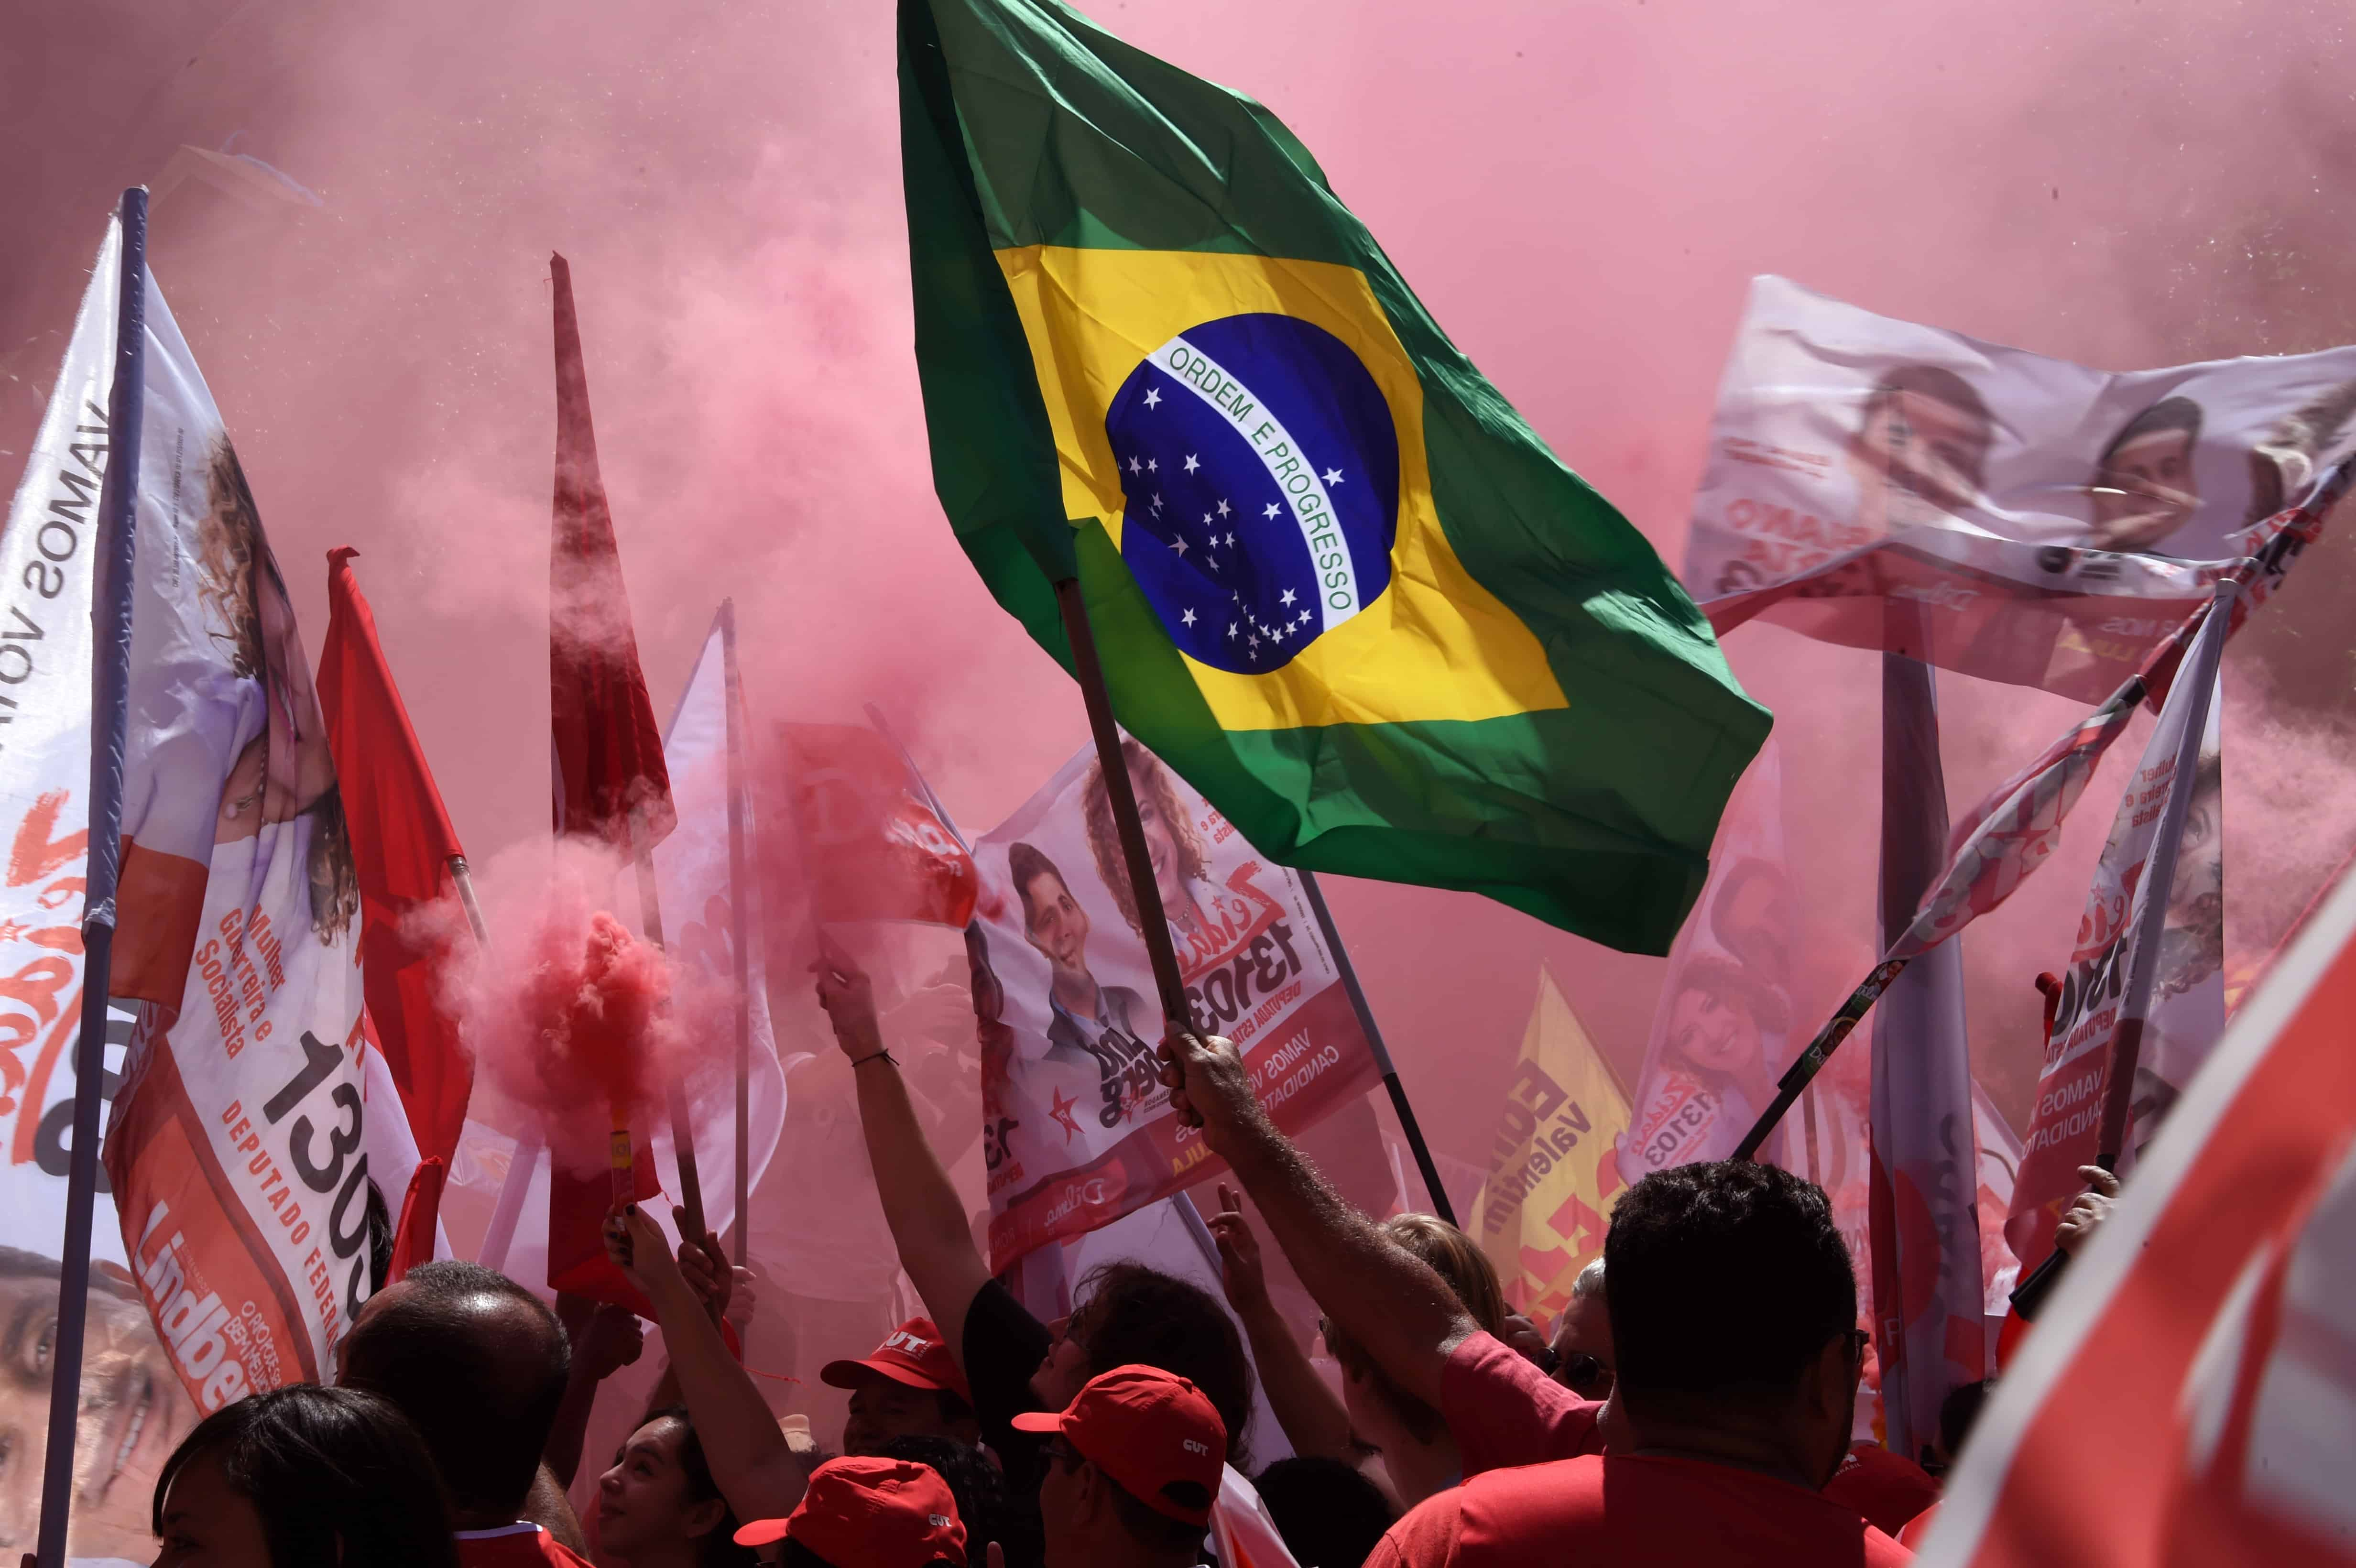 An oil scandal in Brazil complicates the race for incumbent